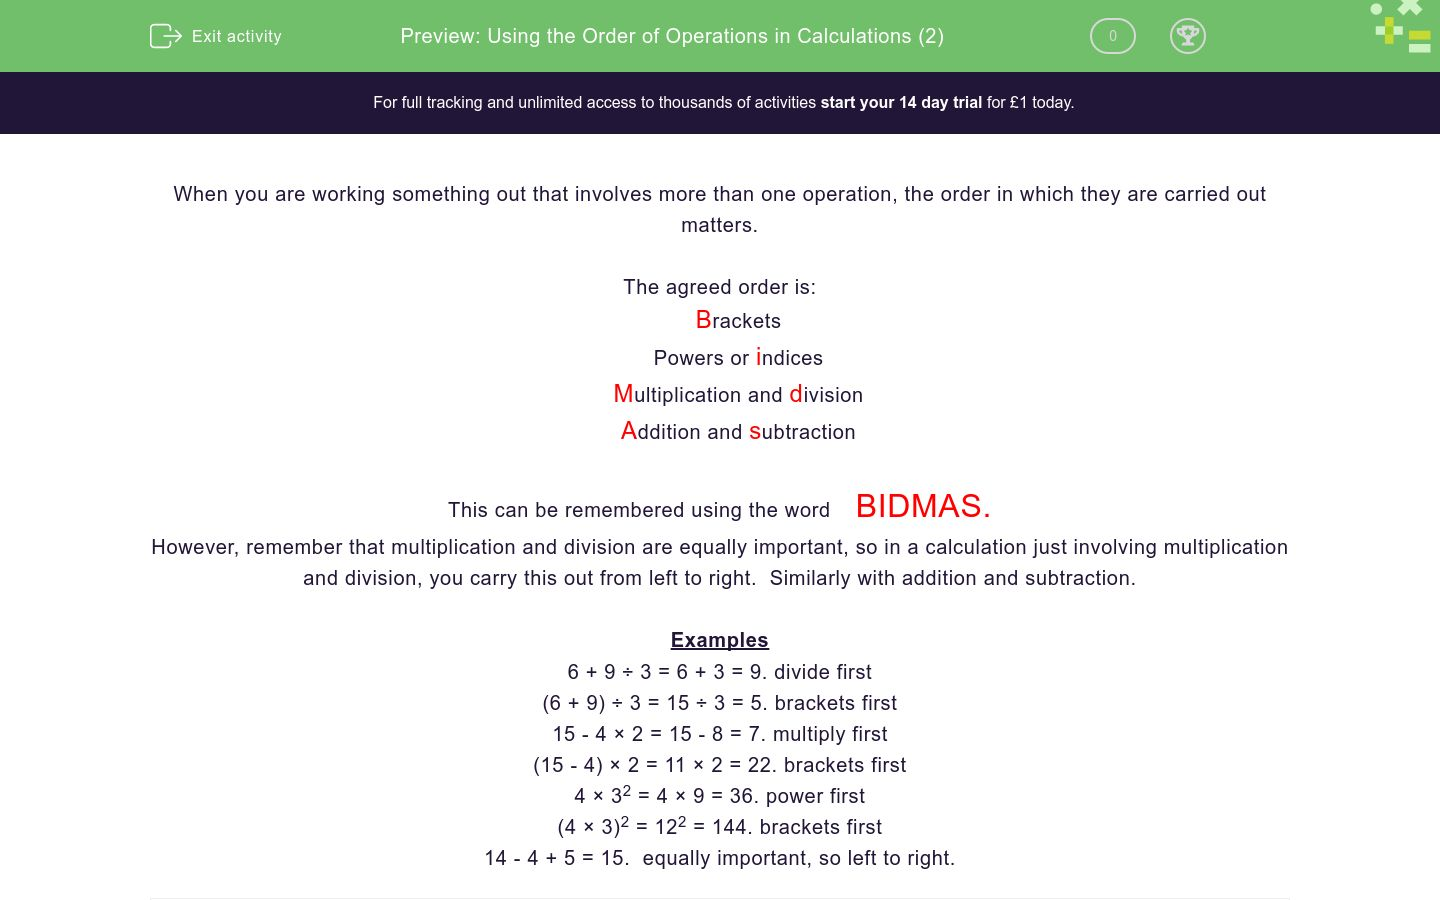 'Using the Order of Operations in Calculations (2)' worksheet